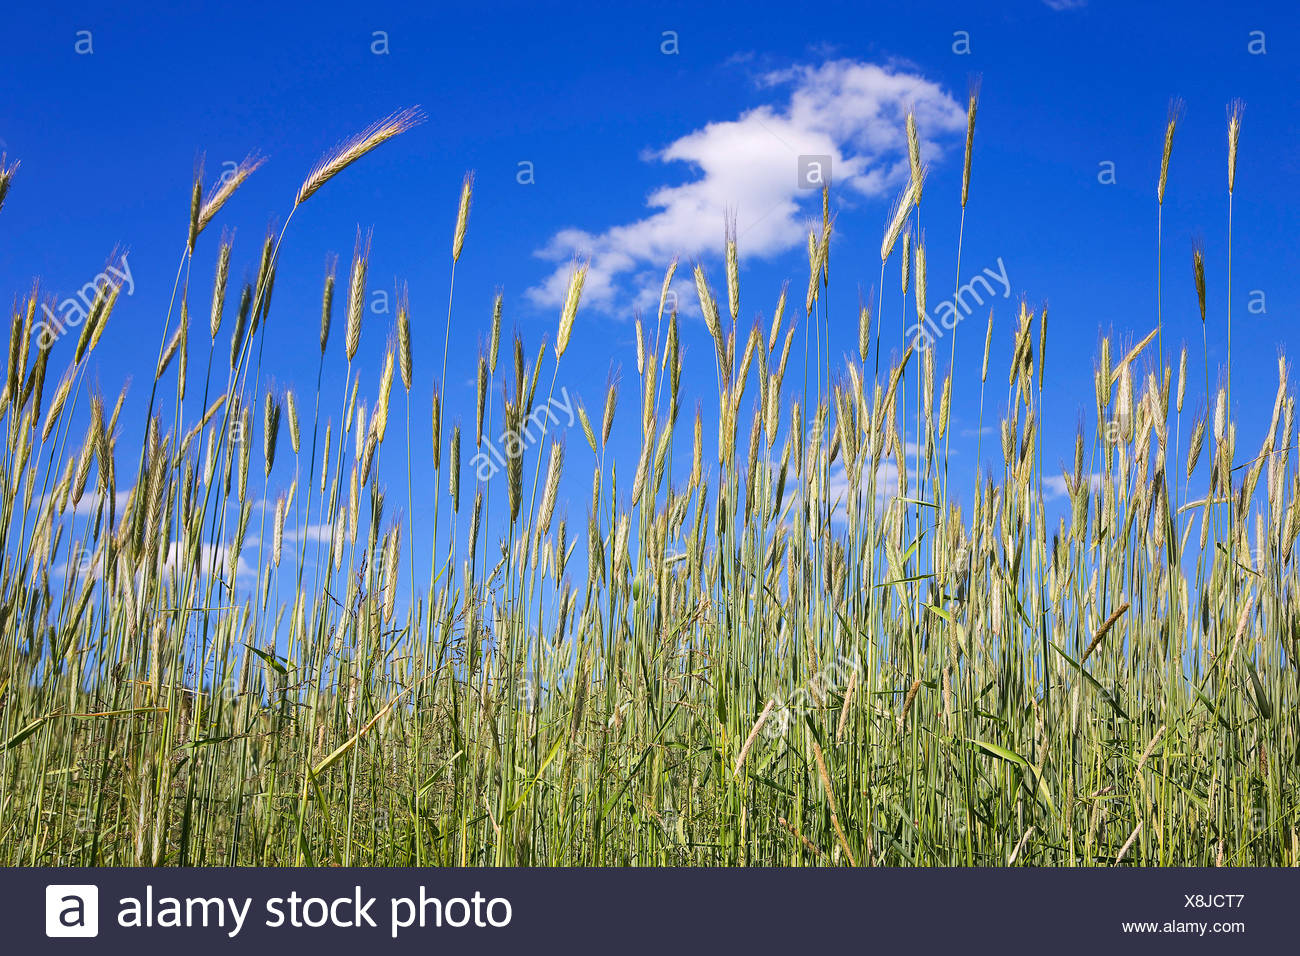 Nature, grass, plant, sky, blade of grass, meadow, blue, green, - Stock Image